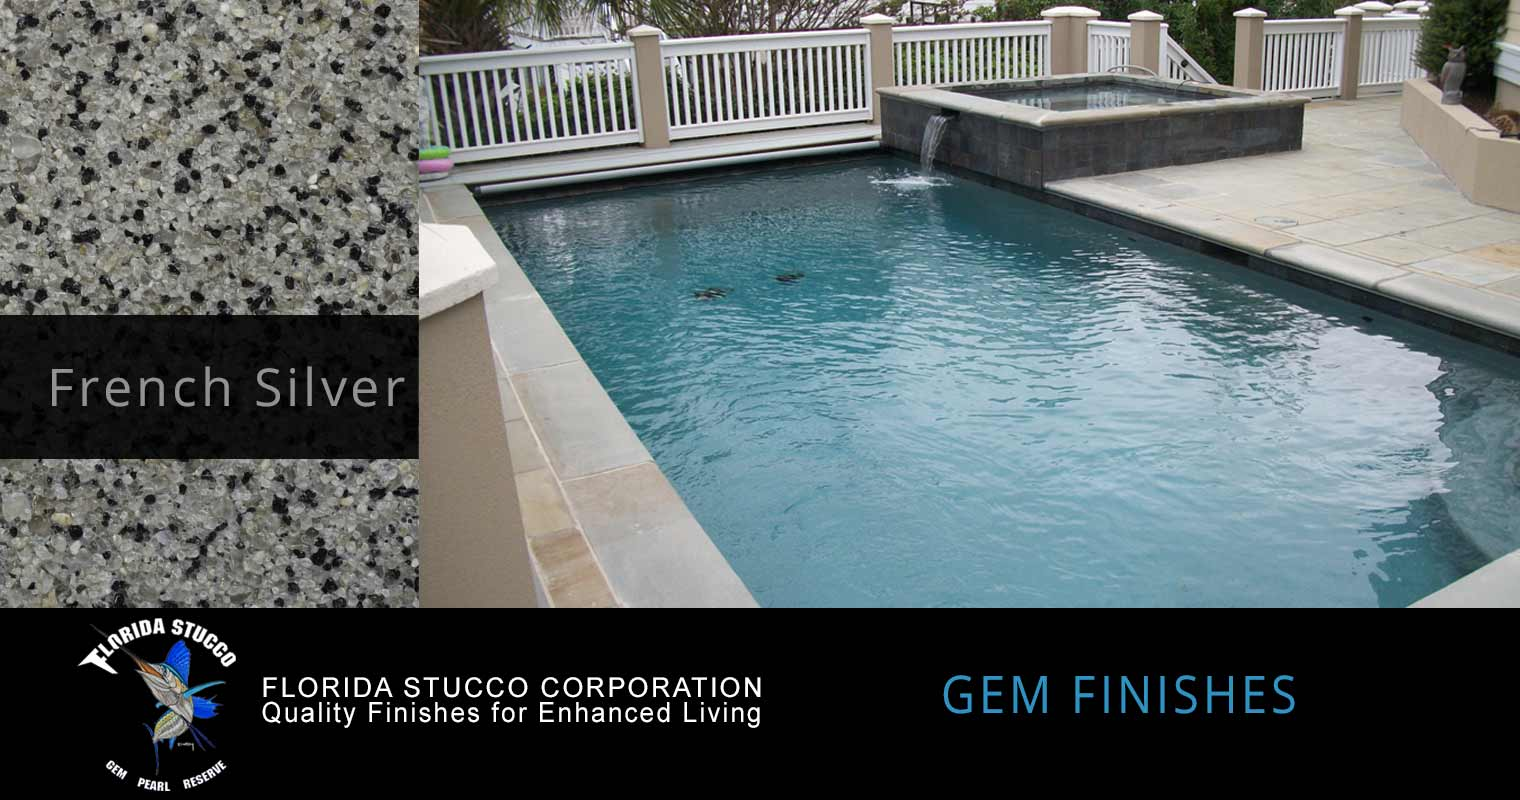 Florida Stucco - French Silver Plastering Finish Pool Sample 3